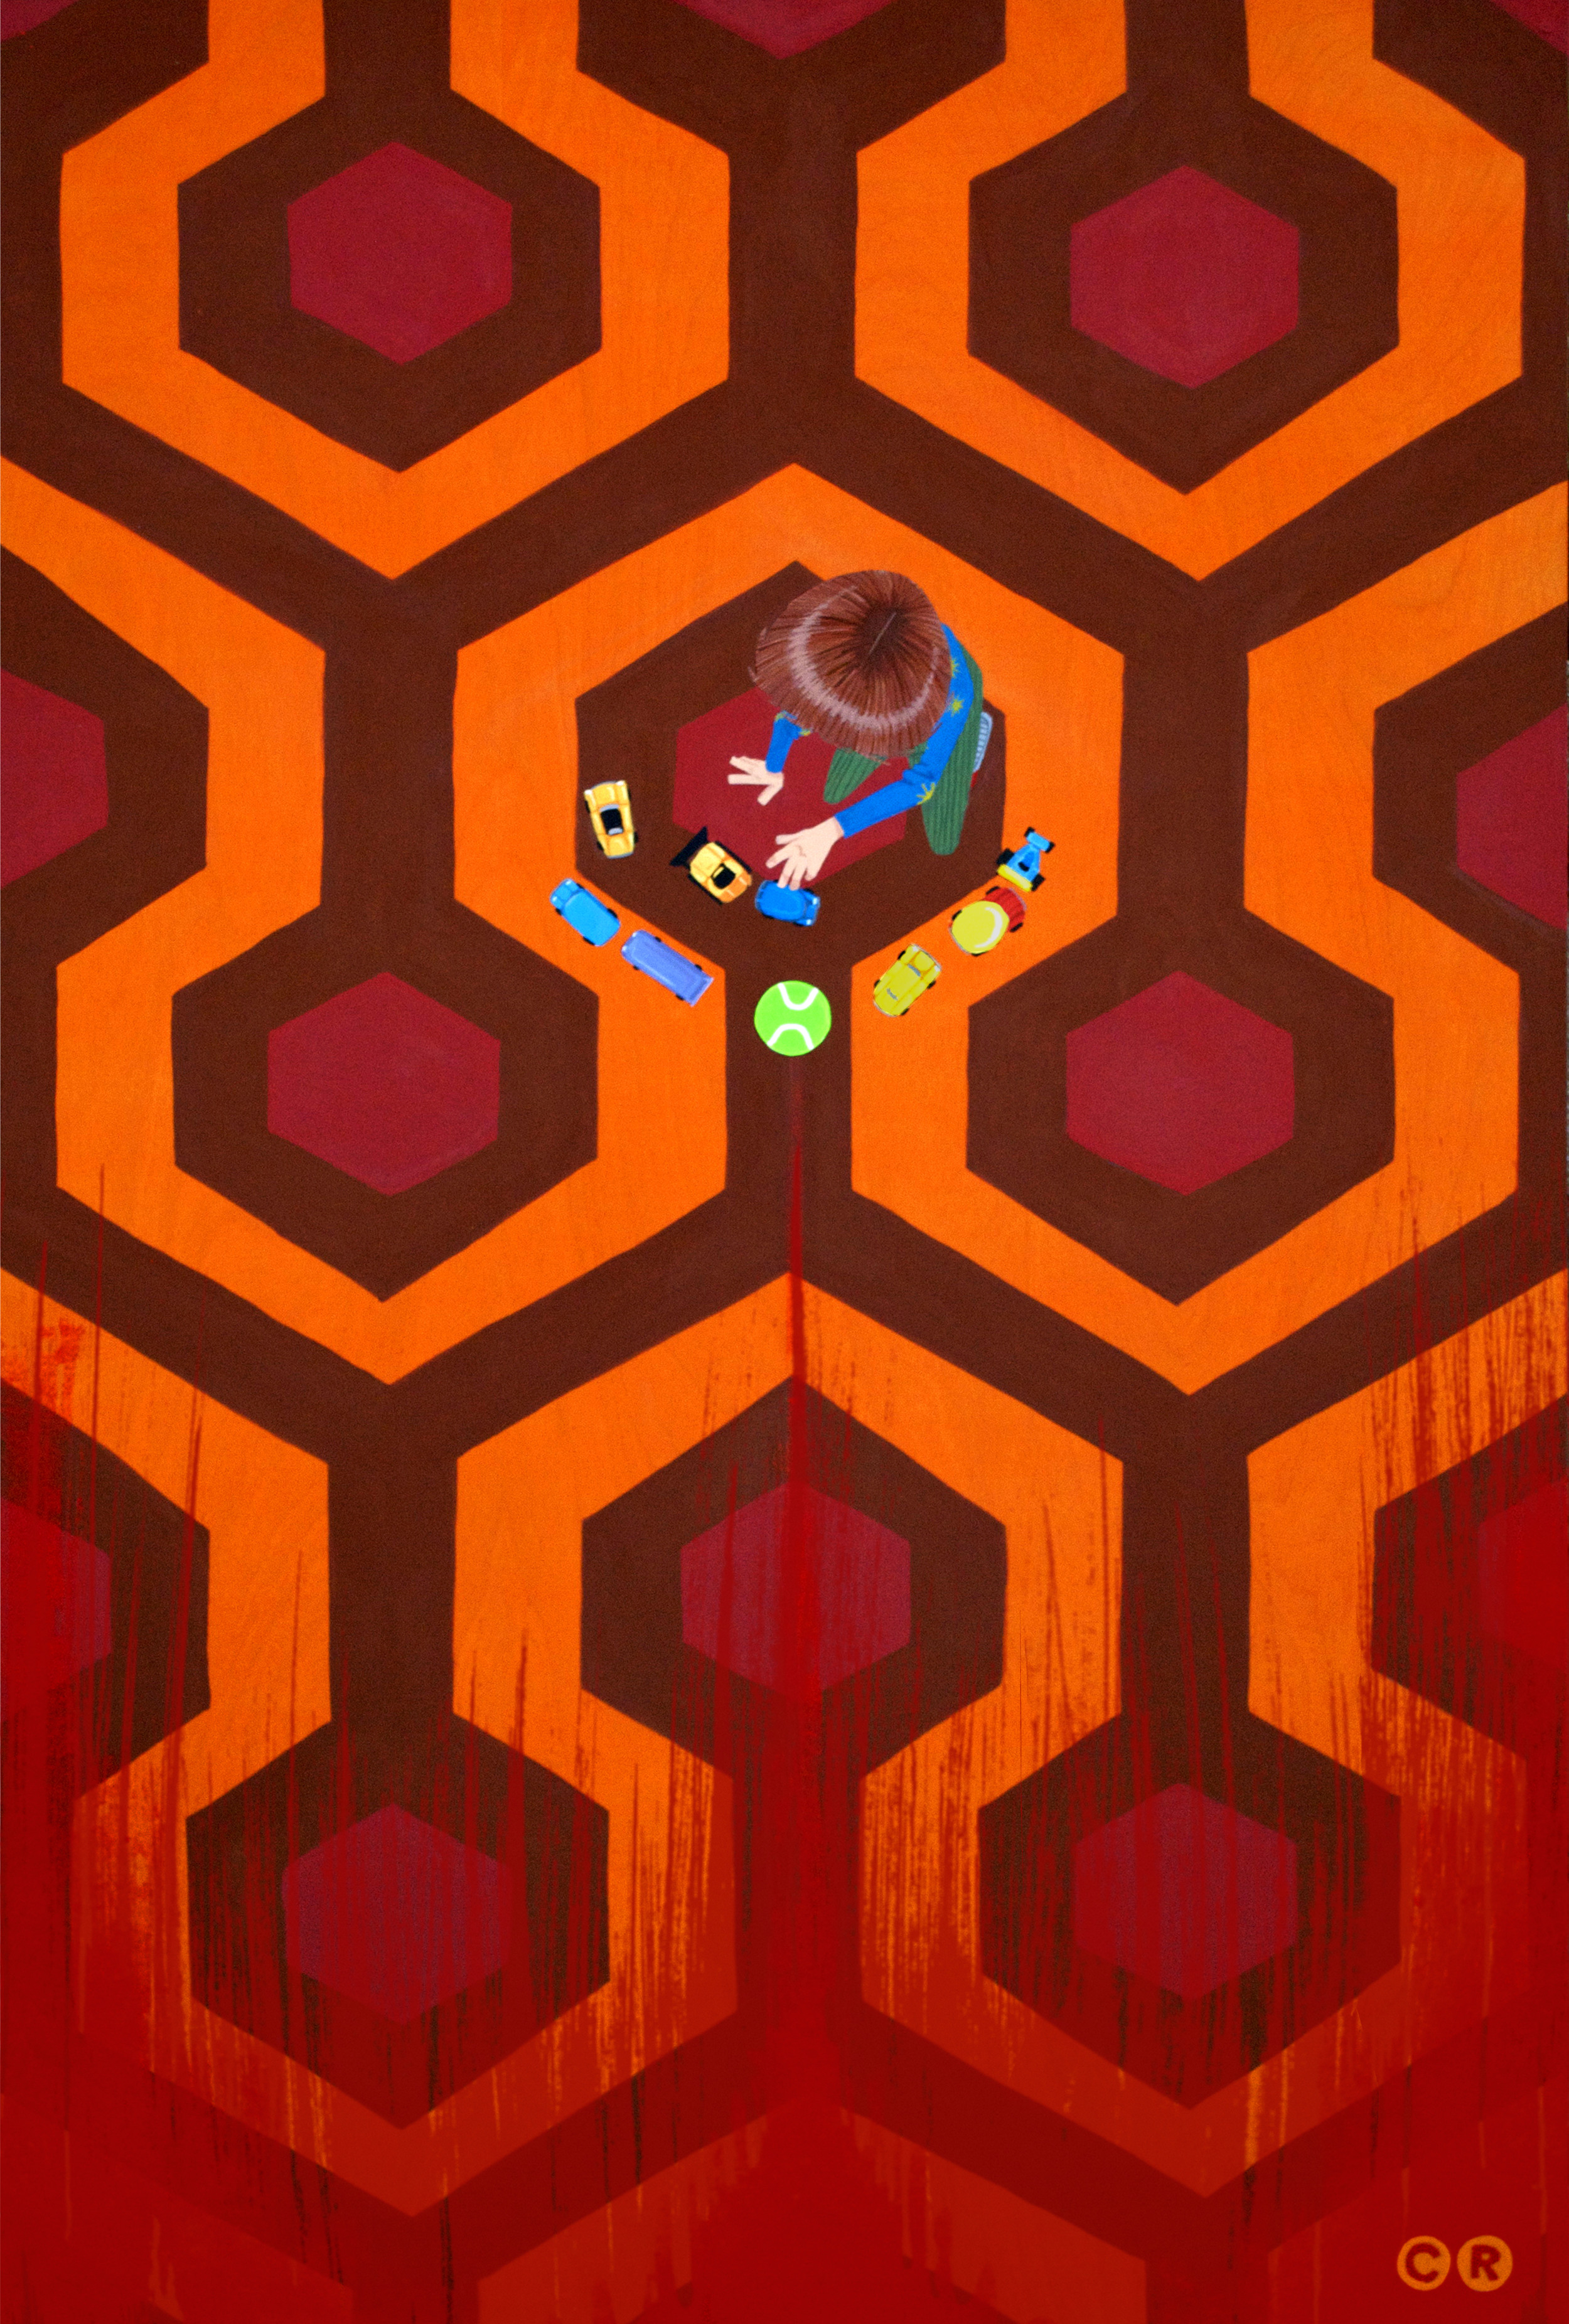 """Room 237.  Photo courtesy IFC Midnight.                 0     0     1     7     41     Indie Memphis     1     1     47     14.0                  Normal     0                     false     false     false         EN-US     JA     X-NONE                                                                                                                                                                                                                                                                                                                                                                                                                                                                                                                                                                                                                                                                                                               /* Style Definitions */ table.MsoNormalTable {mso-style-name:""""Table Normal""""; mso-tstyle-rowband-size:0; mso-tstyle-colband-size:0; mso-style-noshow:yes; mso-style-priority:99; mso-style-parent:""""""""; mso-padding-alt:0in 5.4pt 0in 5.4pt; mso-para-margin:0in; mso-para-margin-bottom:.0001pt; mso-pagination:widow-orphan; font-size:10.0pt; font-family:Calibri;}"""